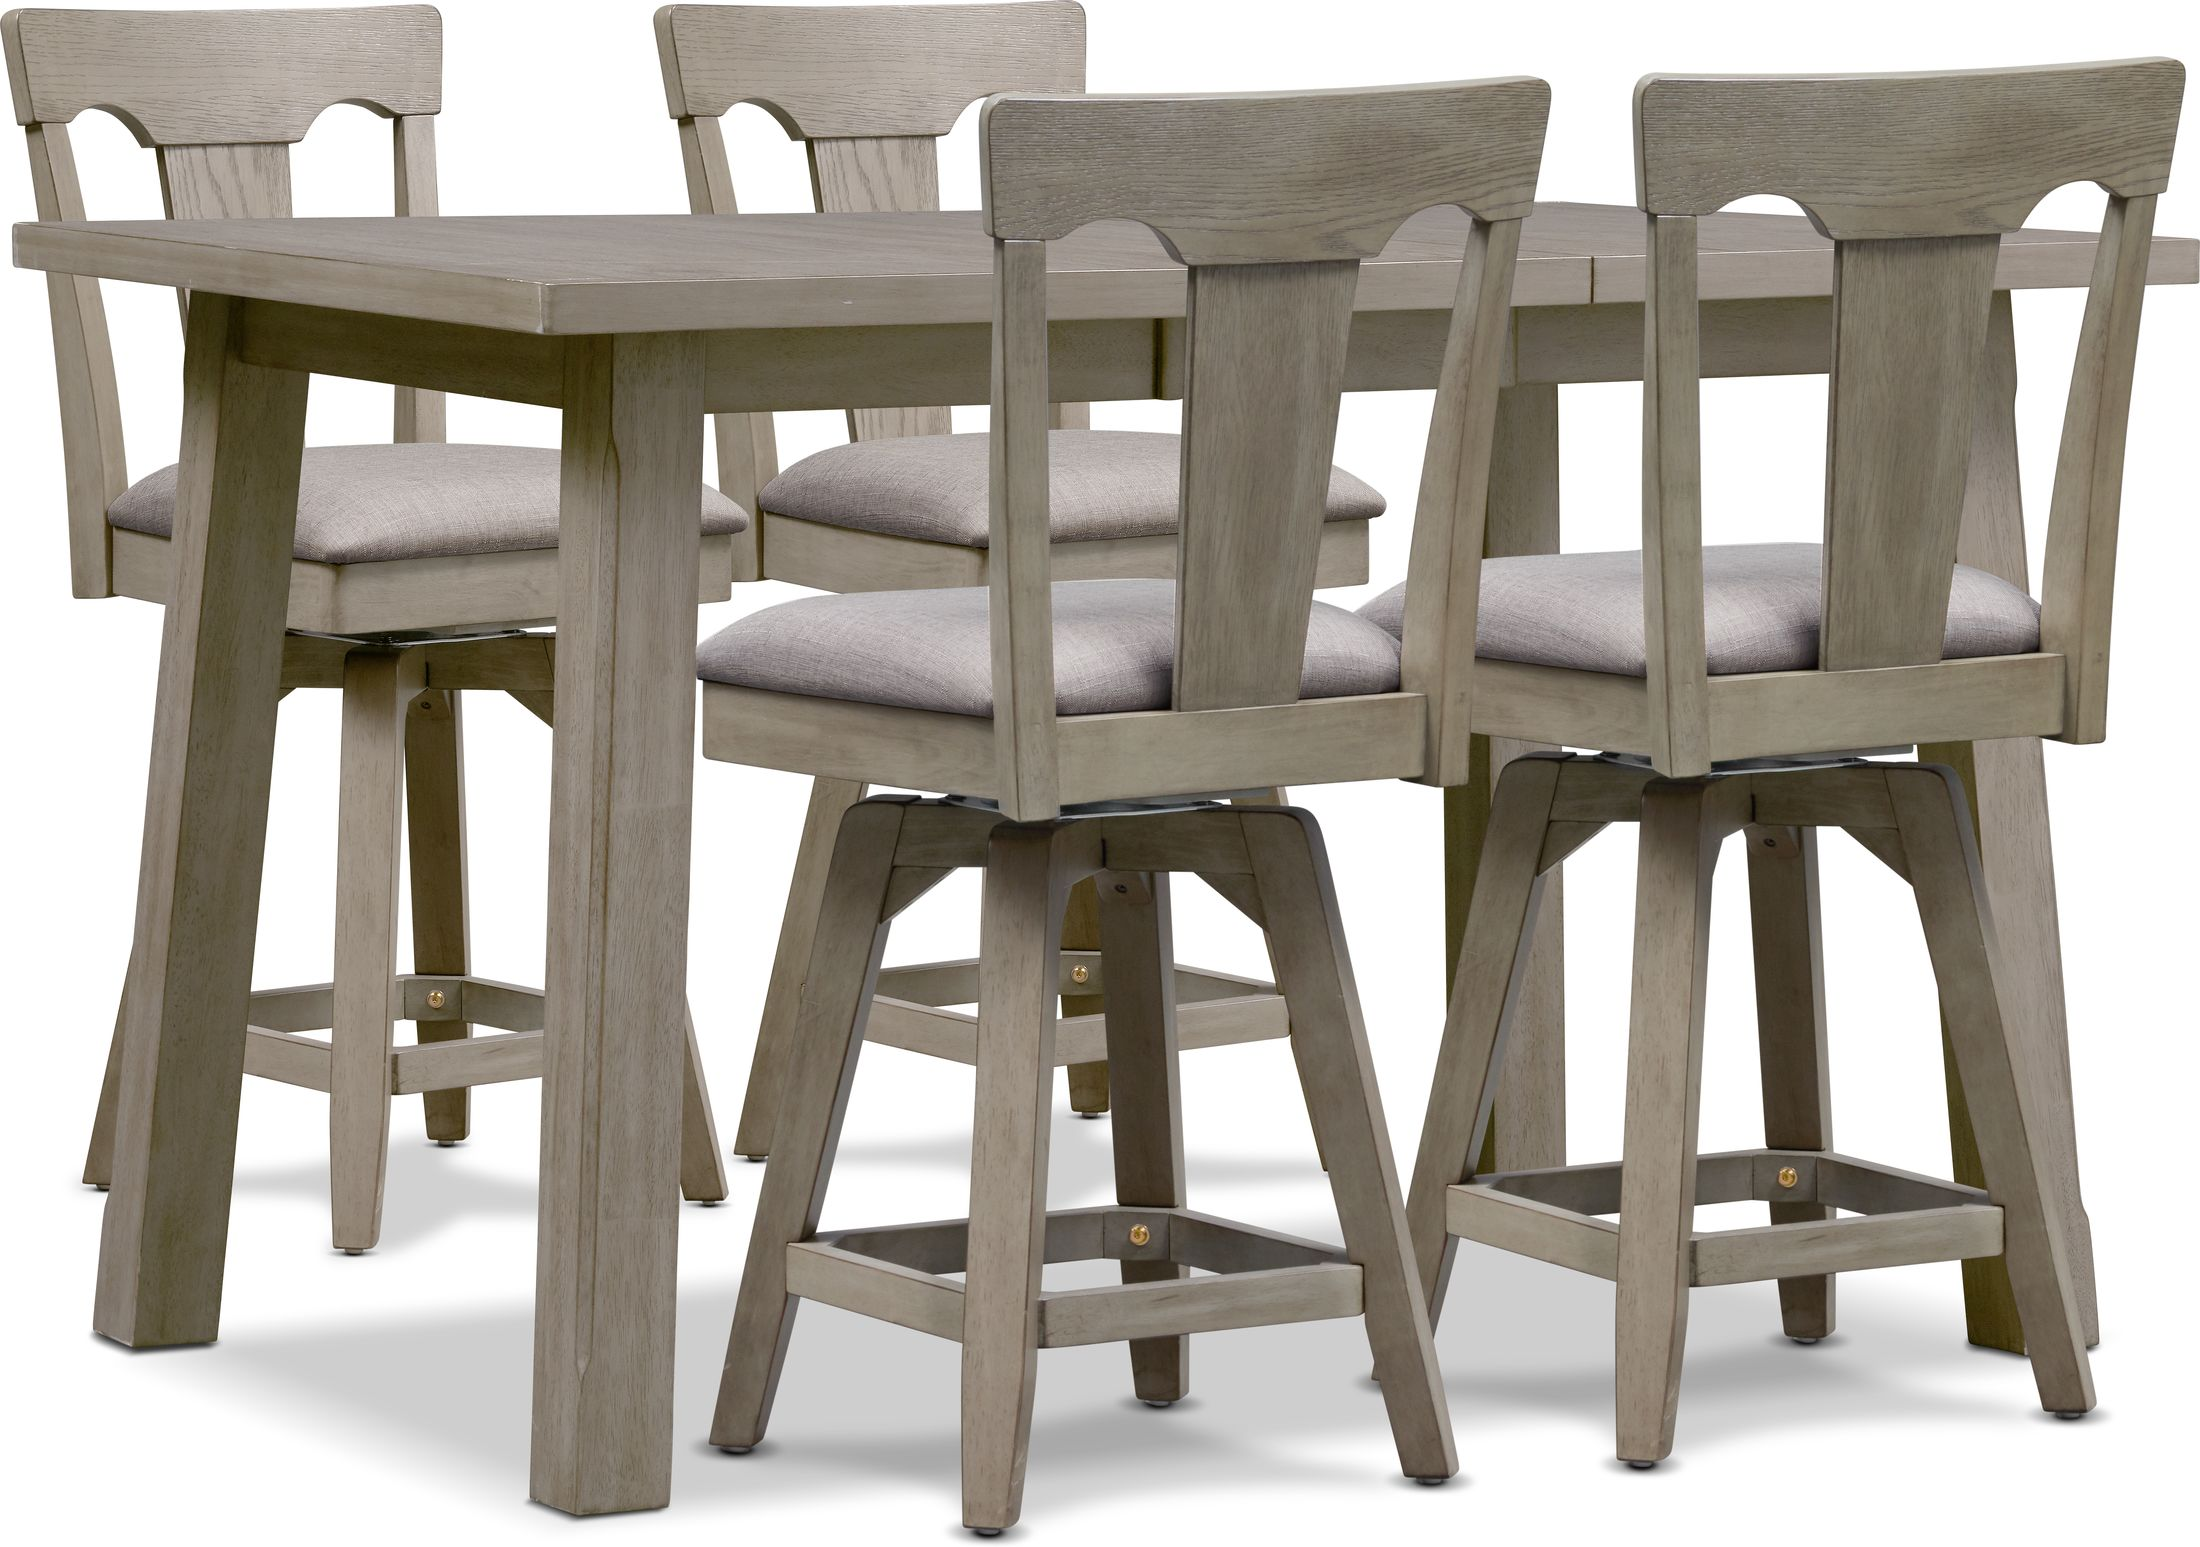 Dining Room Furniture - Maxton Counter-Height Dining Table and 4 Stools